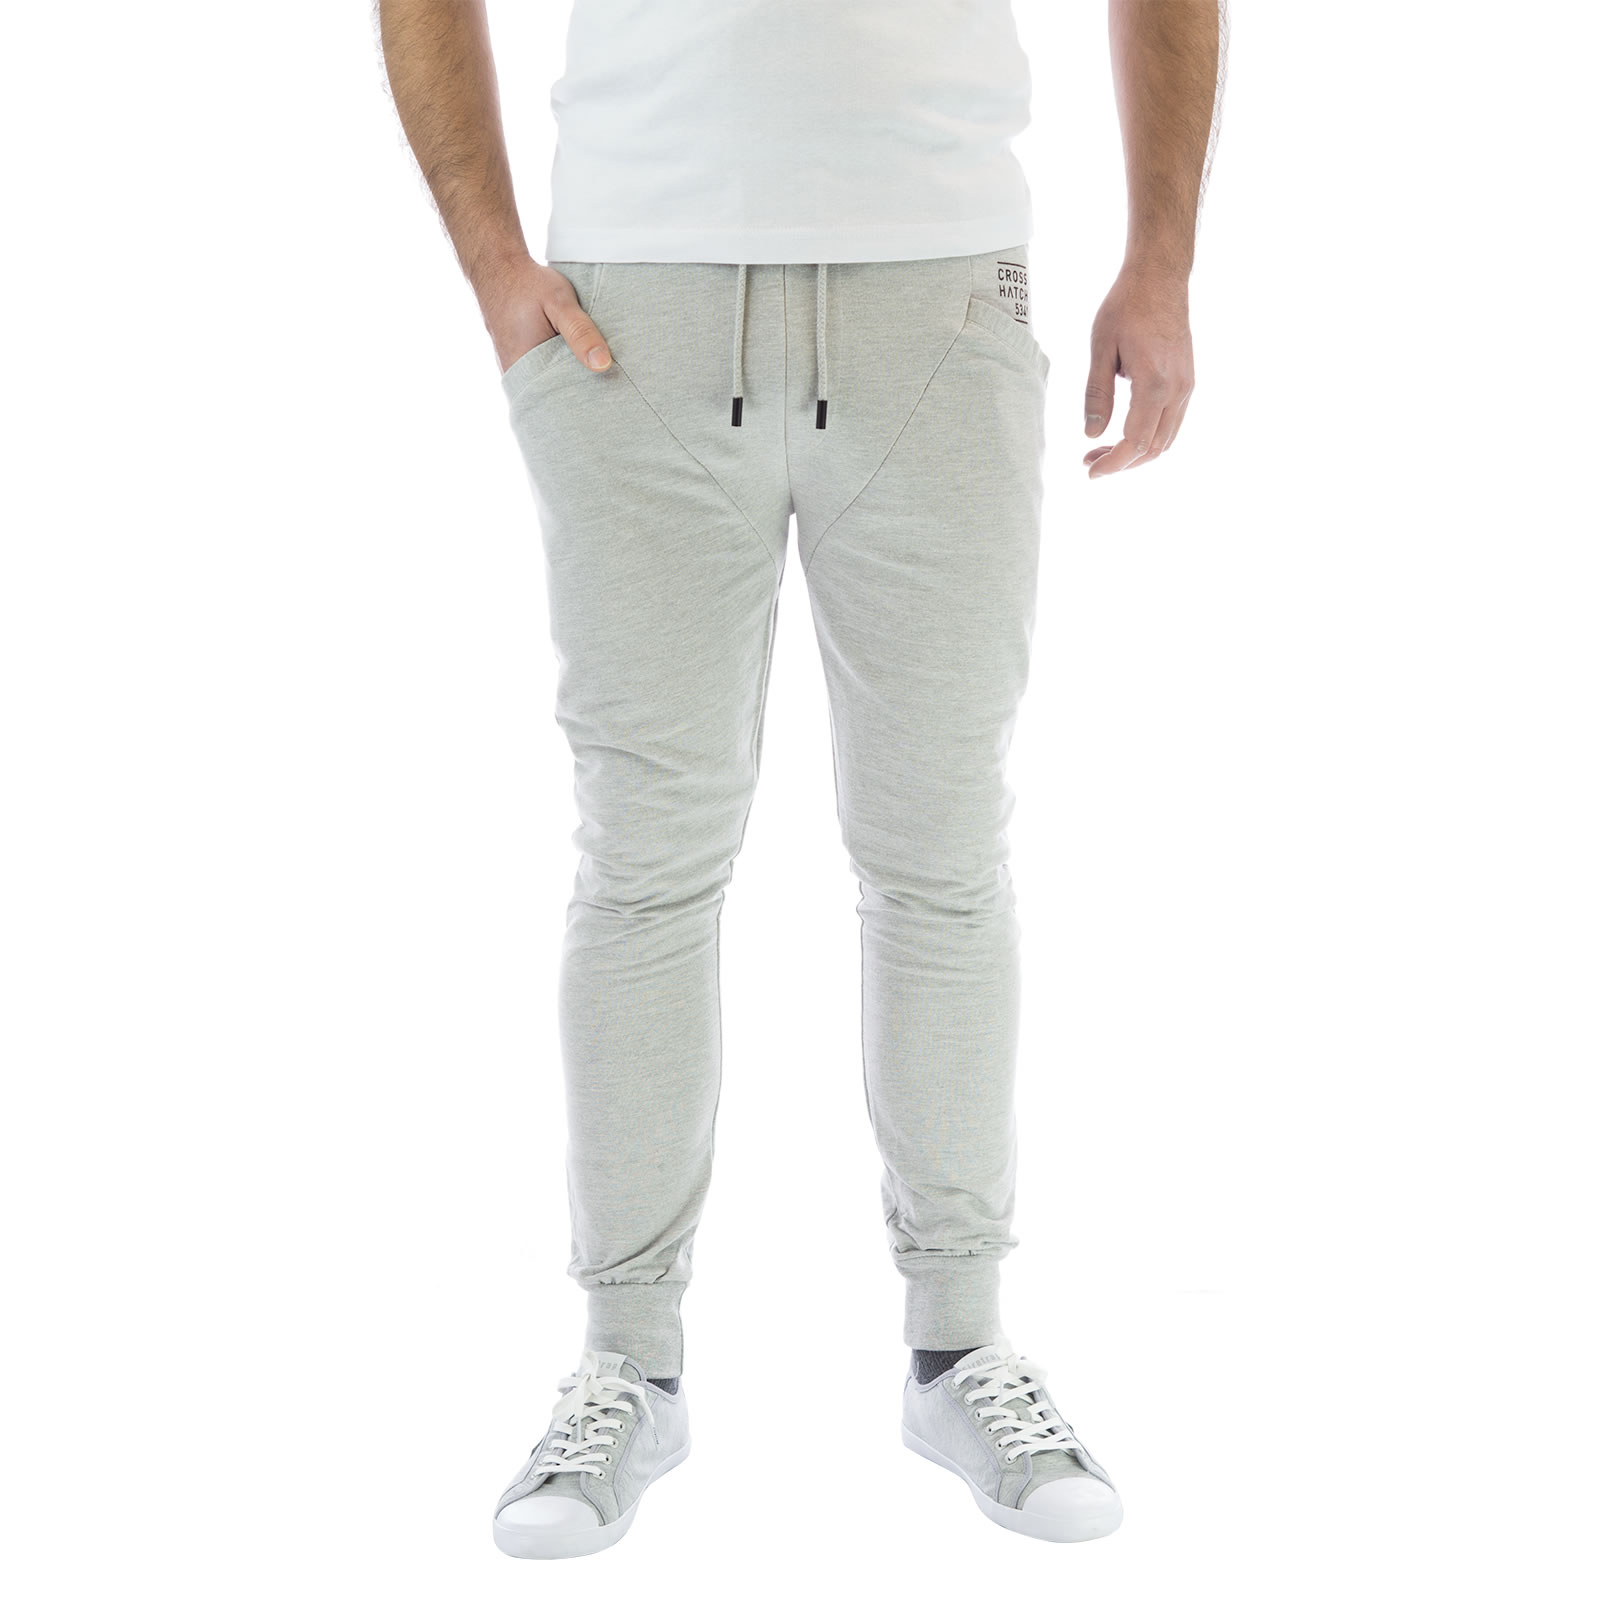 New Mens Skinny Slim Fit Joggers Jogging Bottom Fleece Gym Pants Zip Pockets US. Brand New. $ to $ Buy It Now. Free Shipping. Buy 1, get 1 20% off. Men Gym Slim Fit Trousers Tracksuit Bottoms Skinny Joggers Sweat Track Zip Pants. New (Other) $ to .